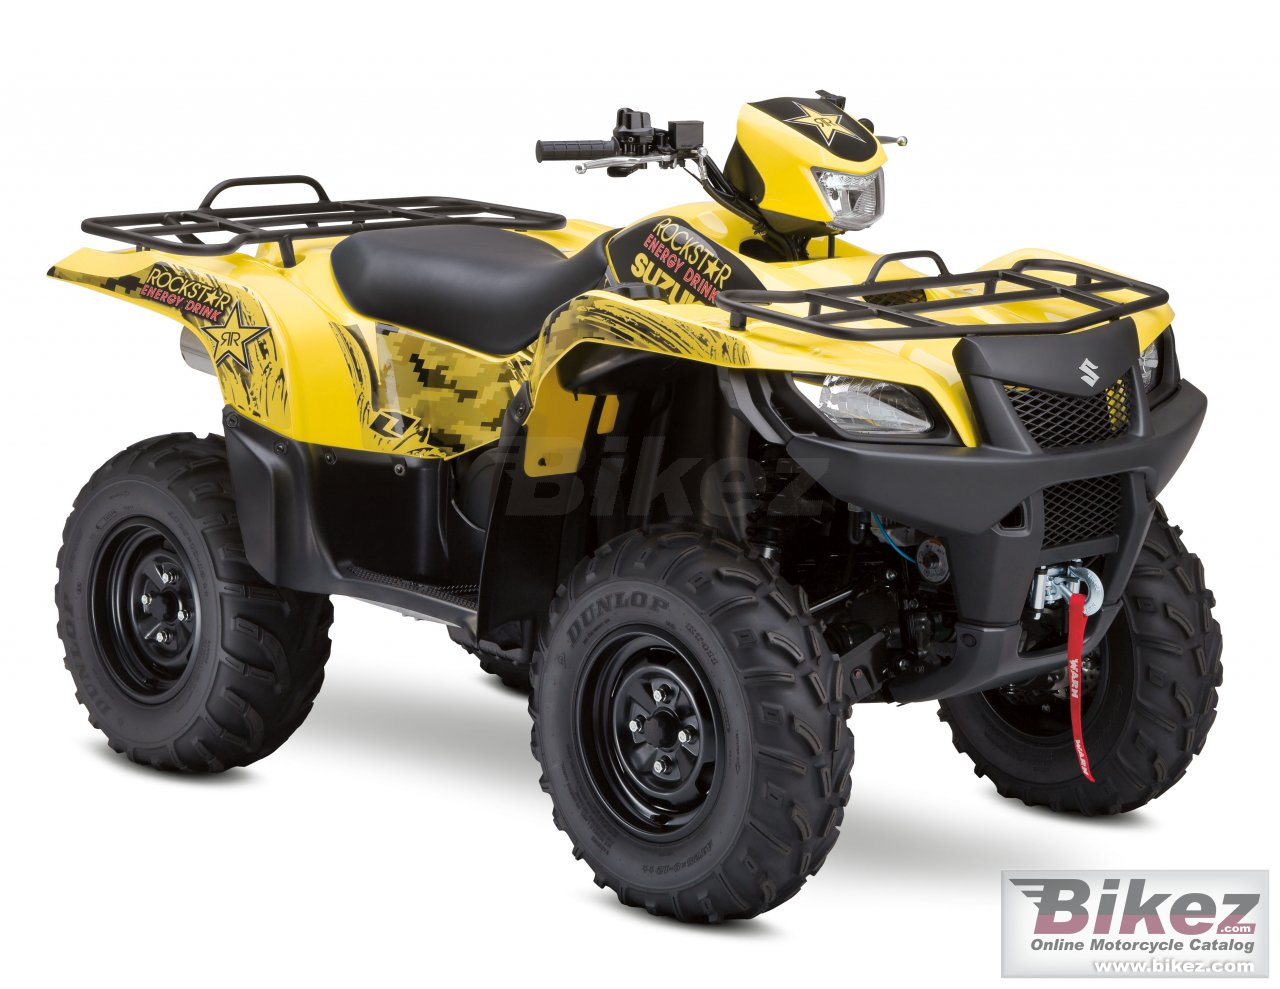 Big Suzuki kingquad 750axi rockstar picture and wallpaper from Bikez.com